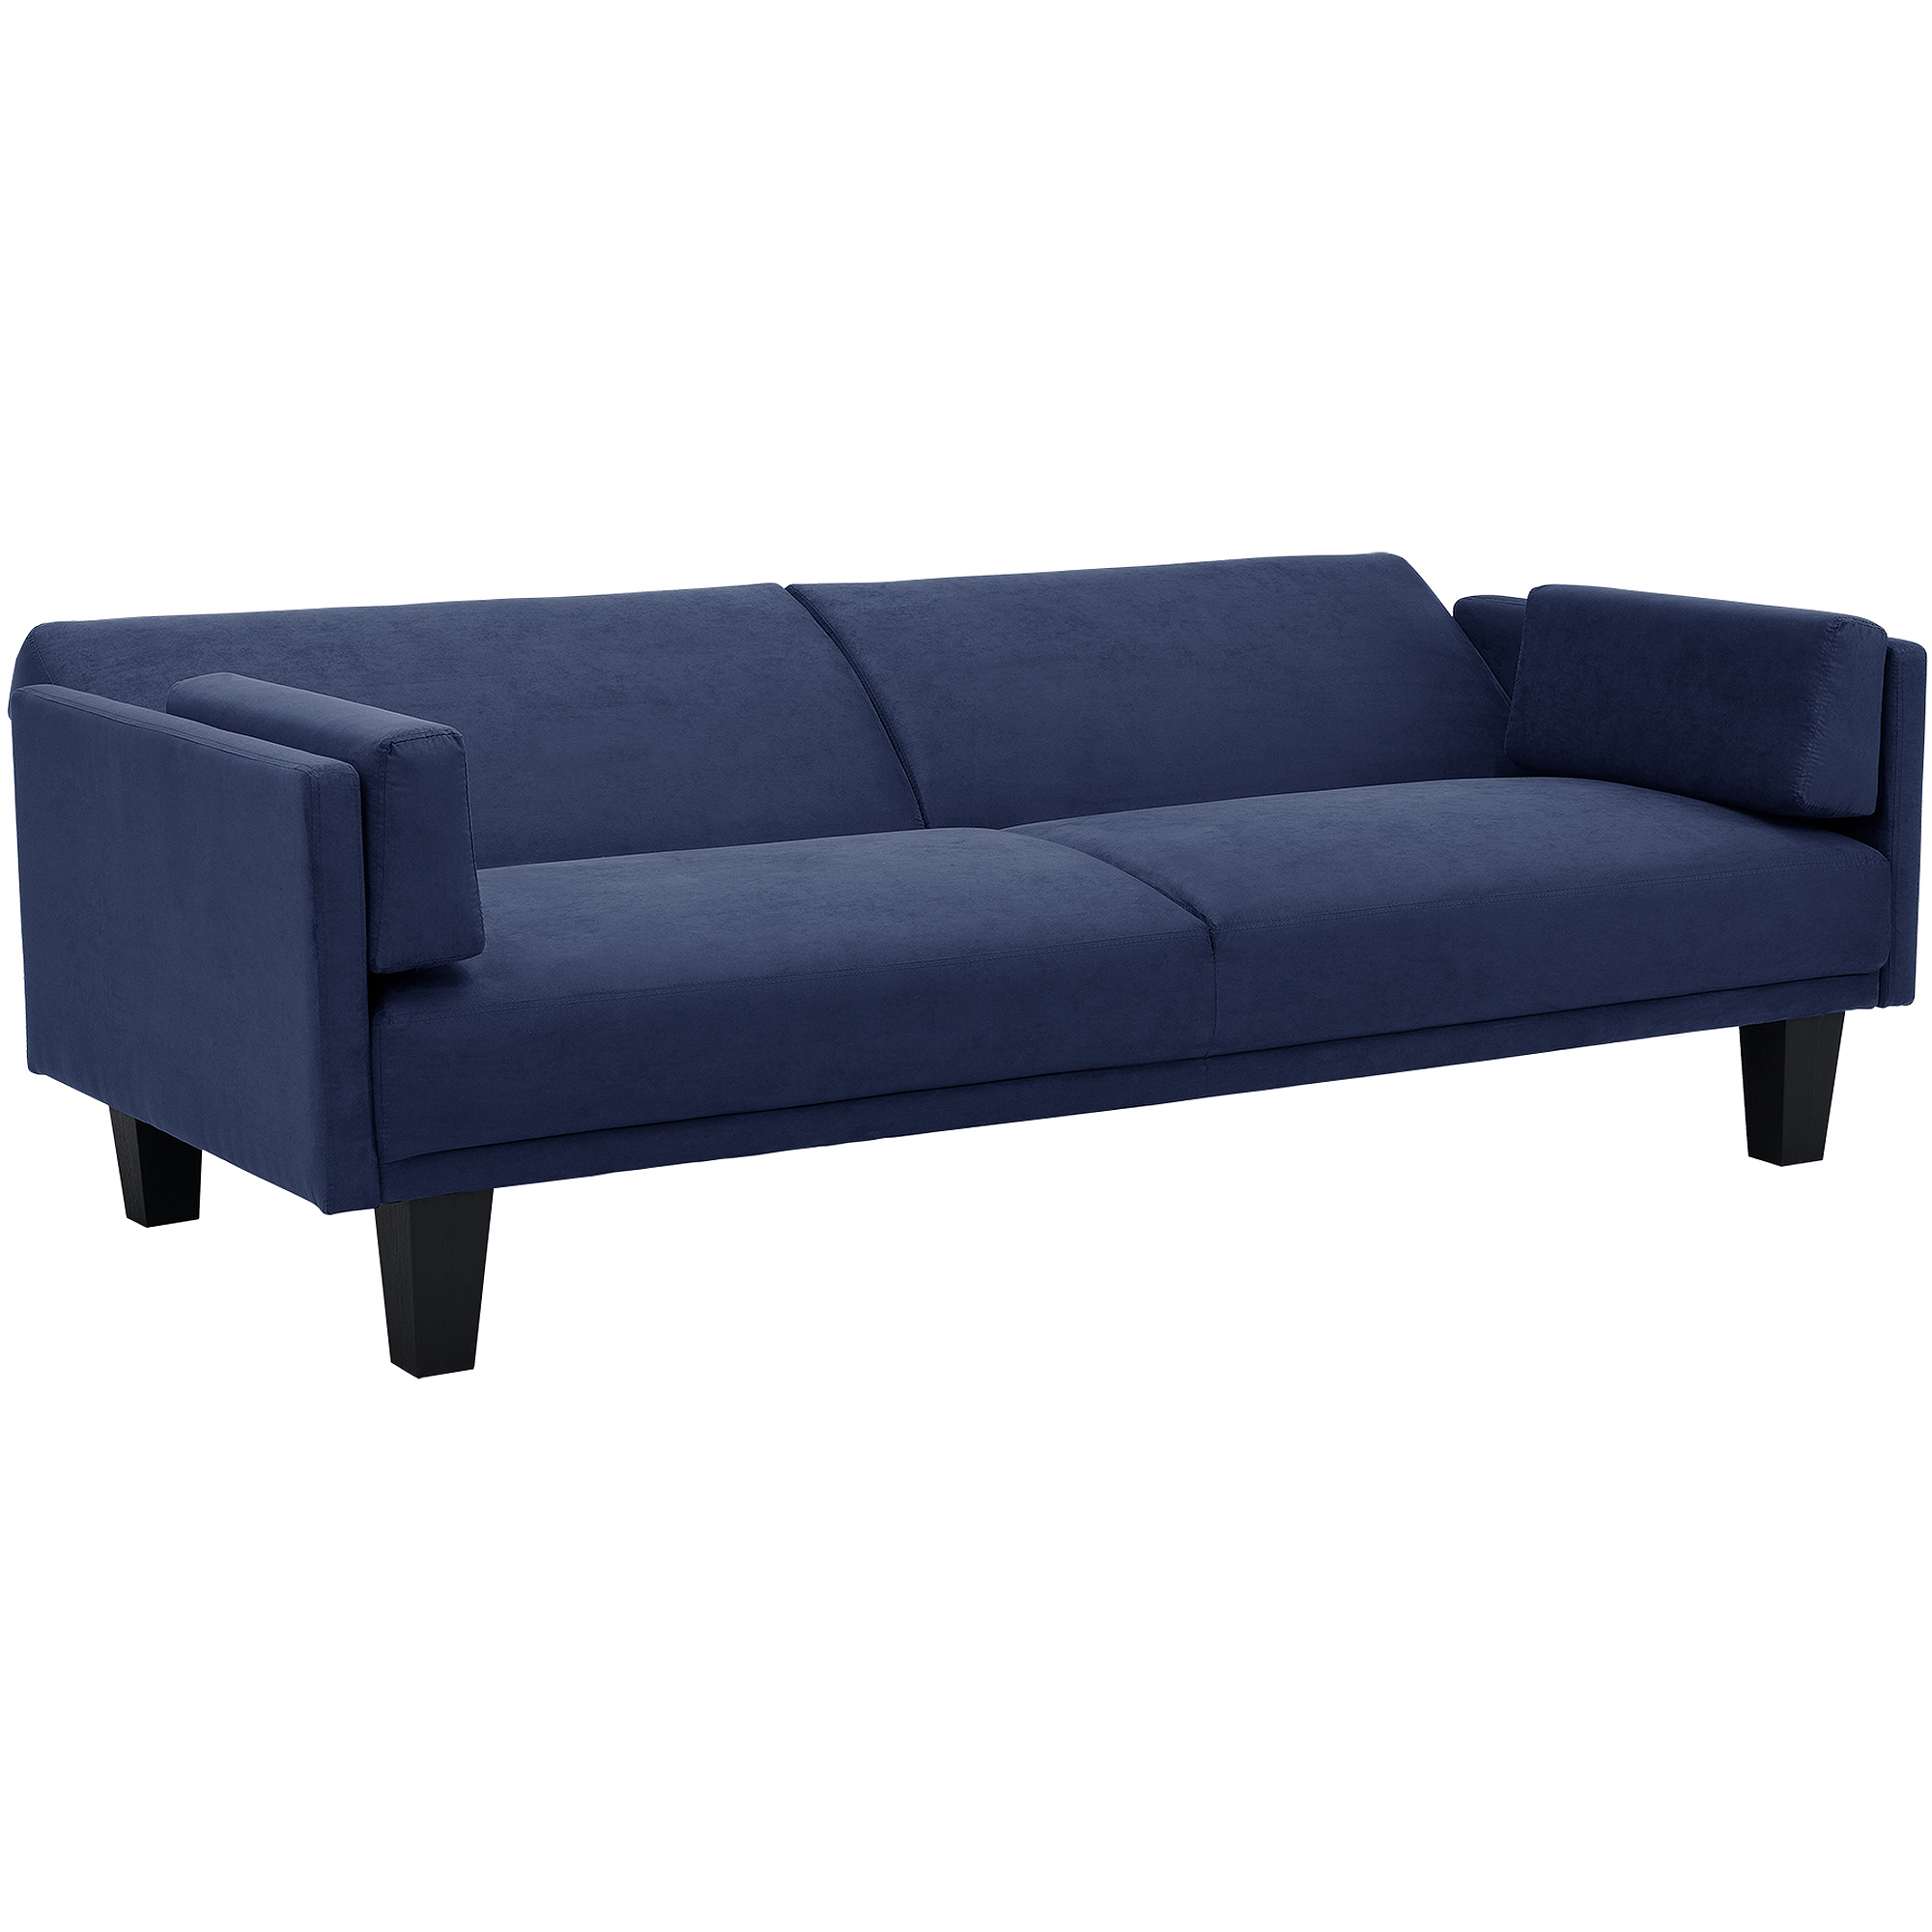 metro futon sofa bed blue